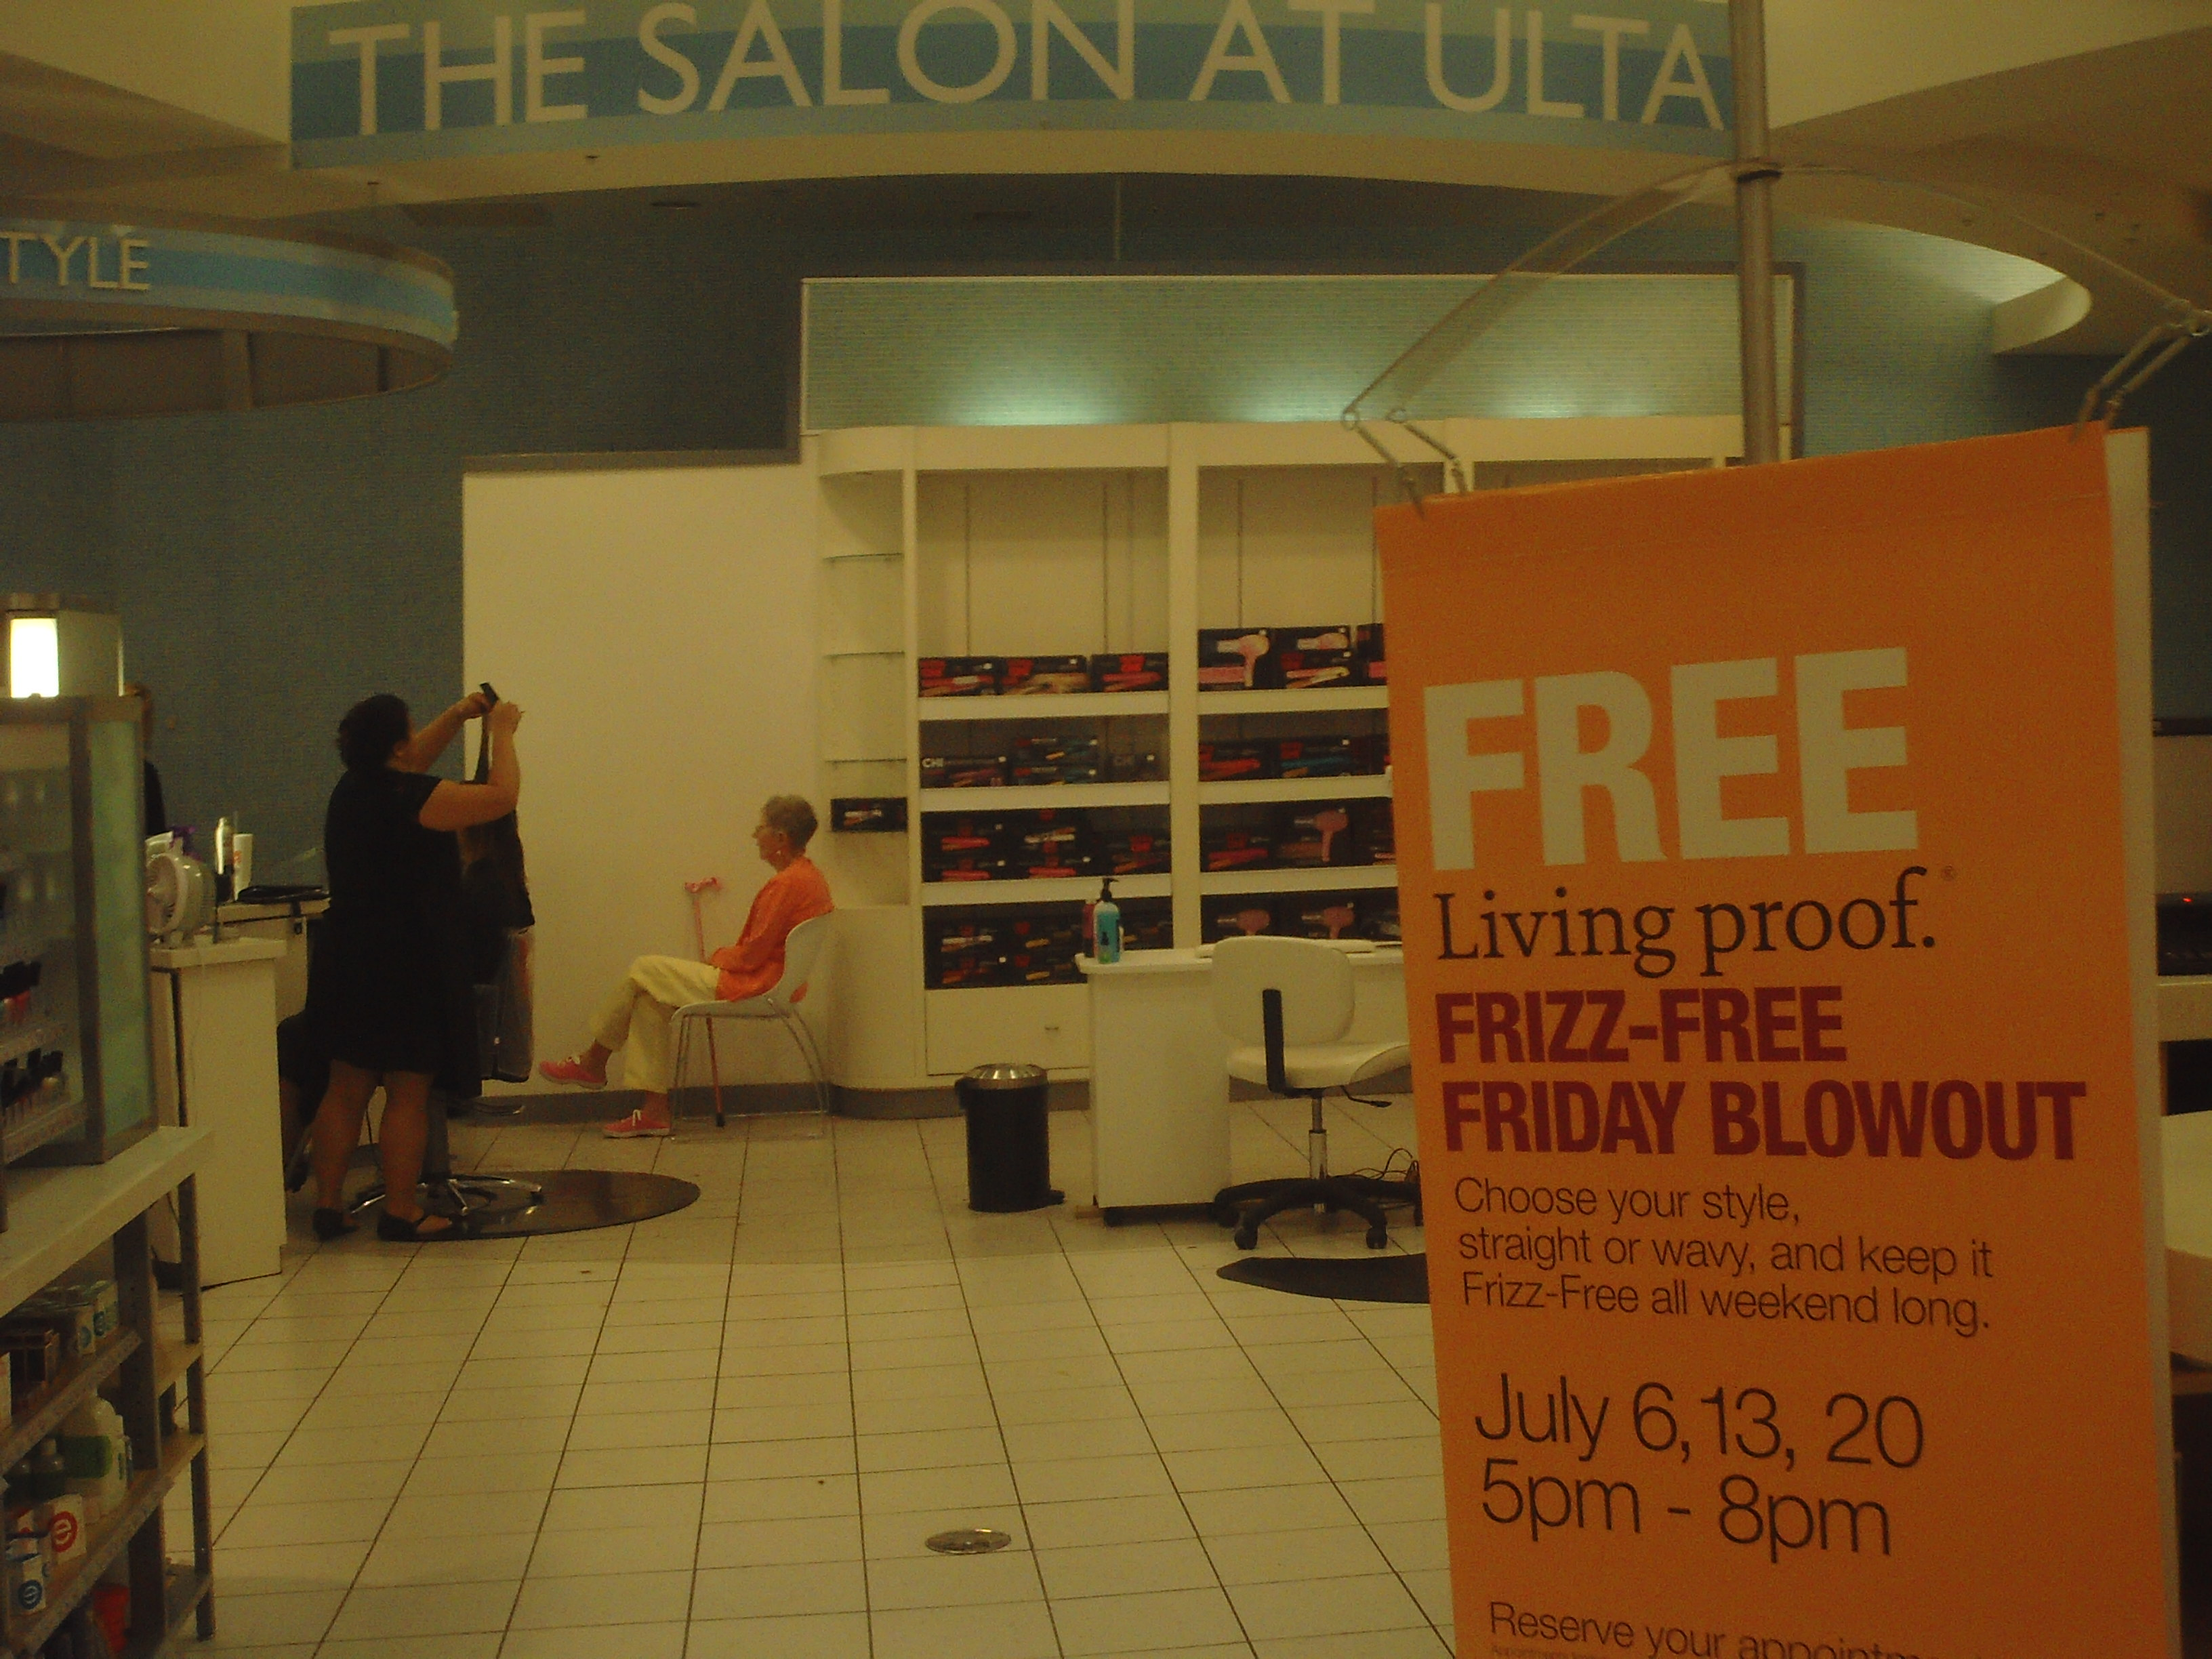 Salon But Promo My Hair Appt At The Ulta Salon Frizz Free Fridays Promo Qcsupermom